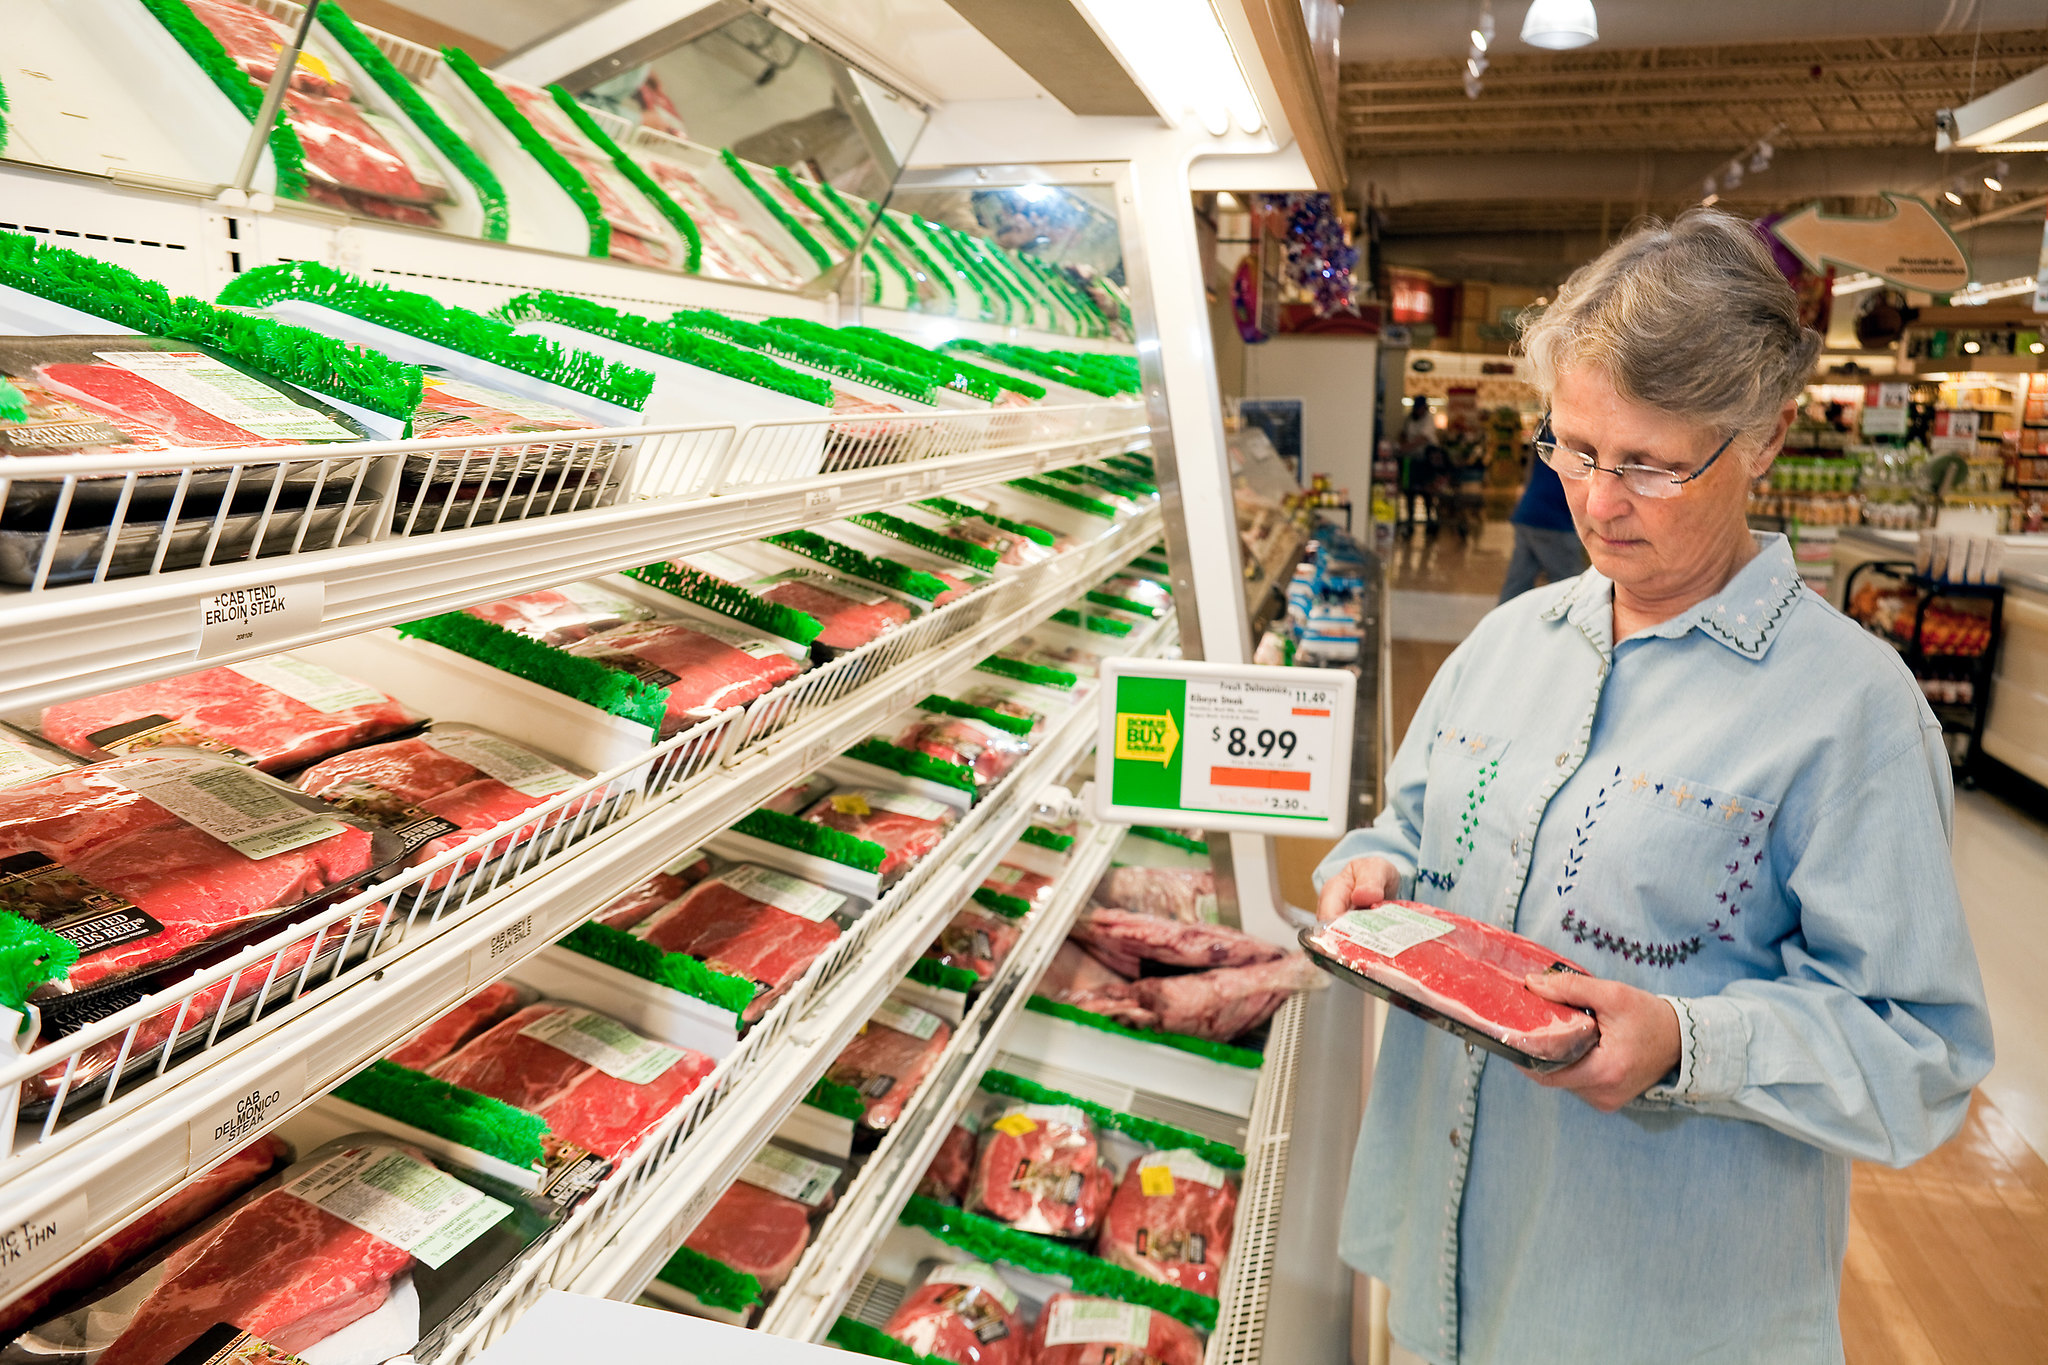 A shopper examines a package of meat in a grocery store